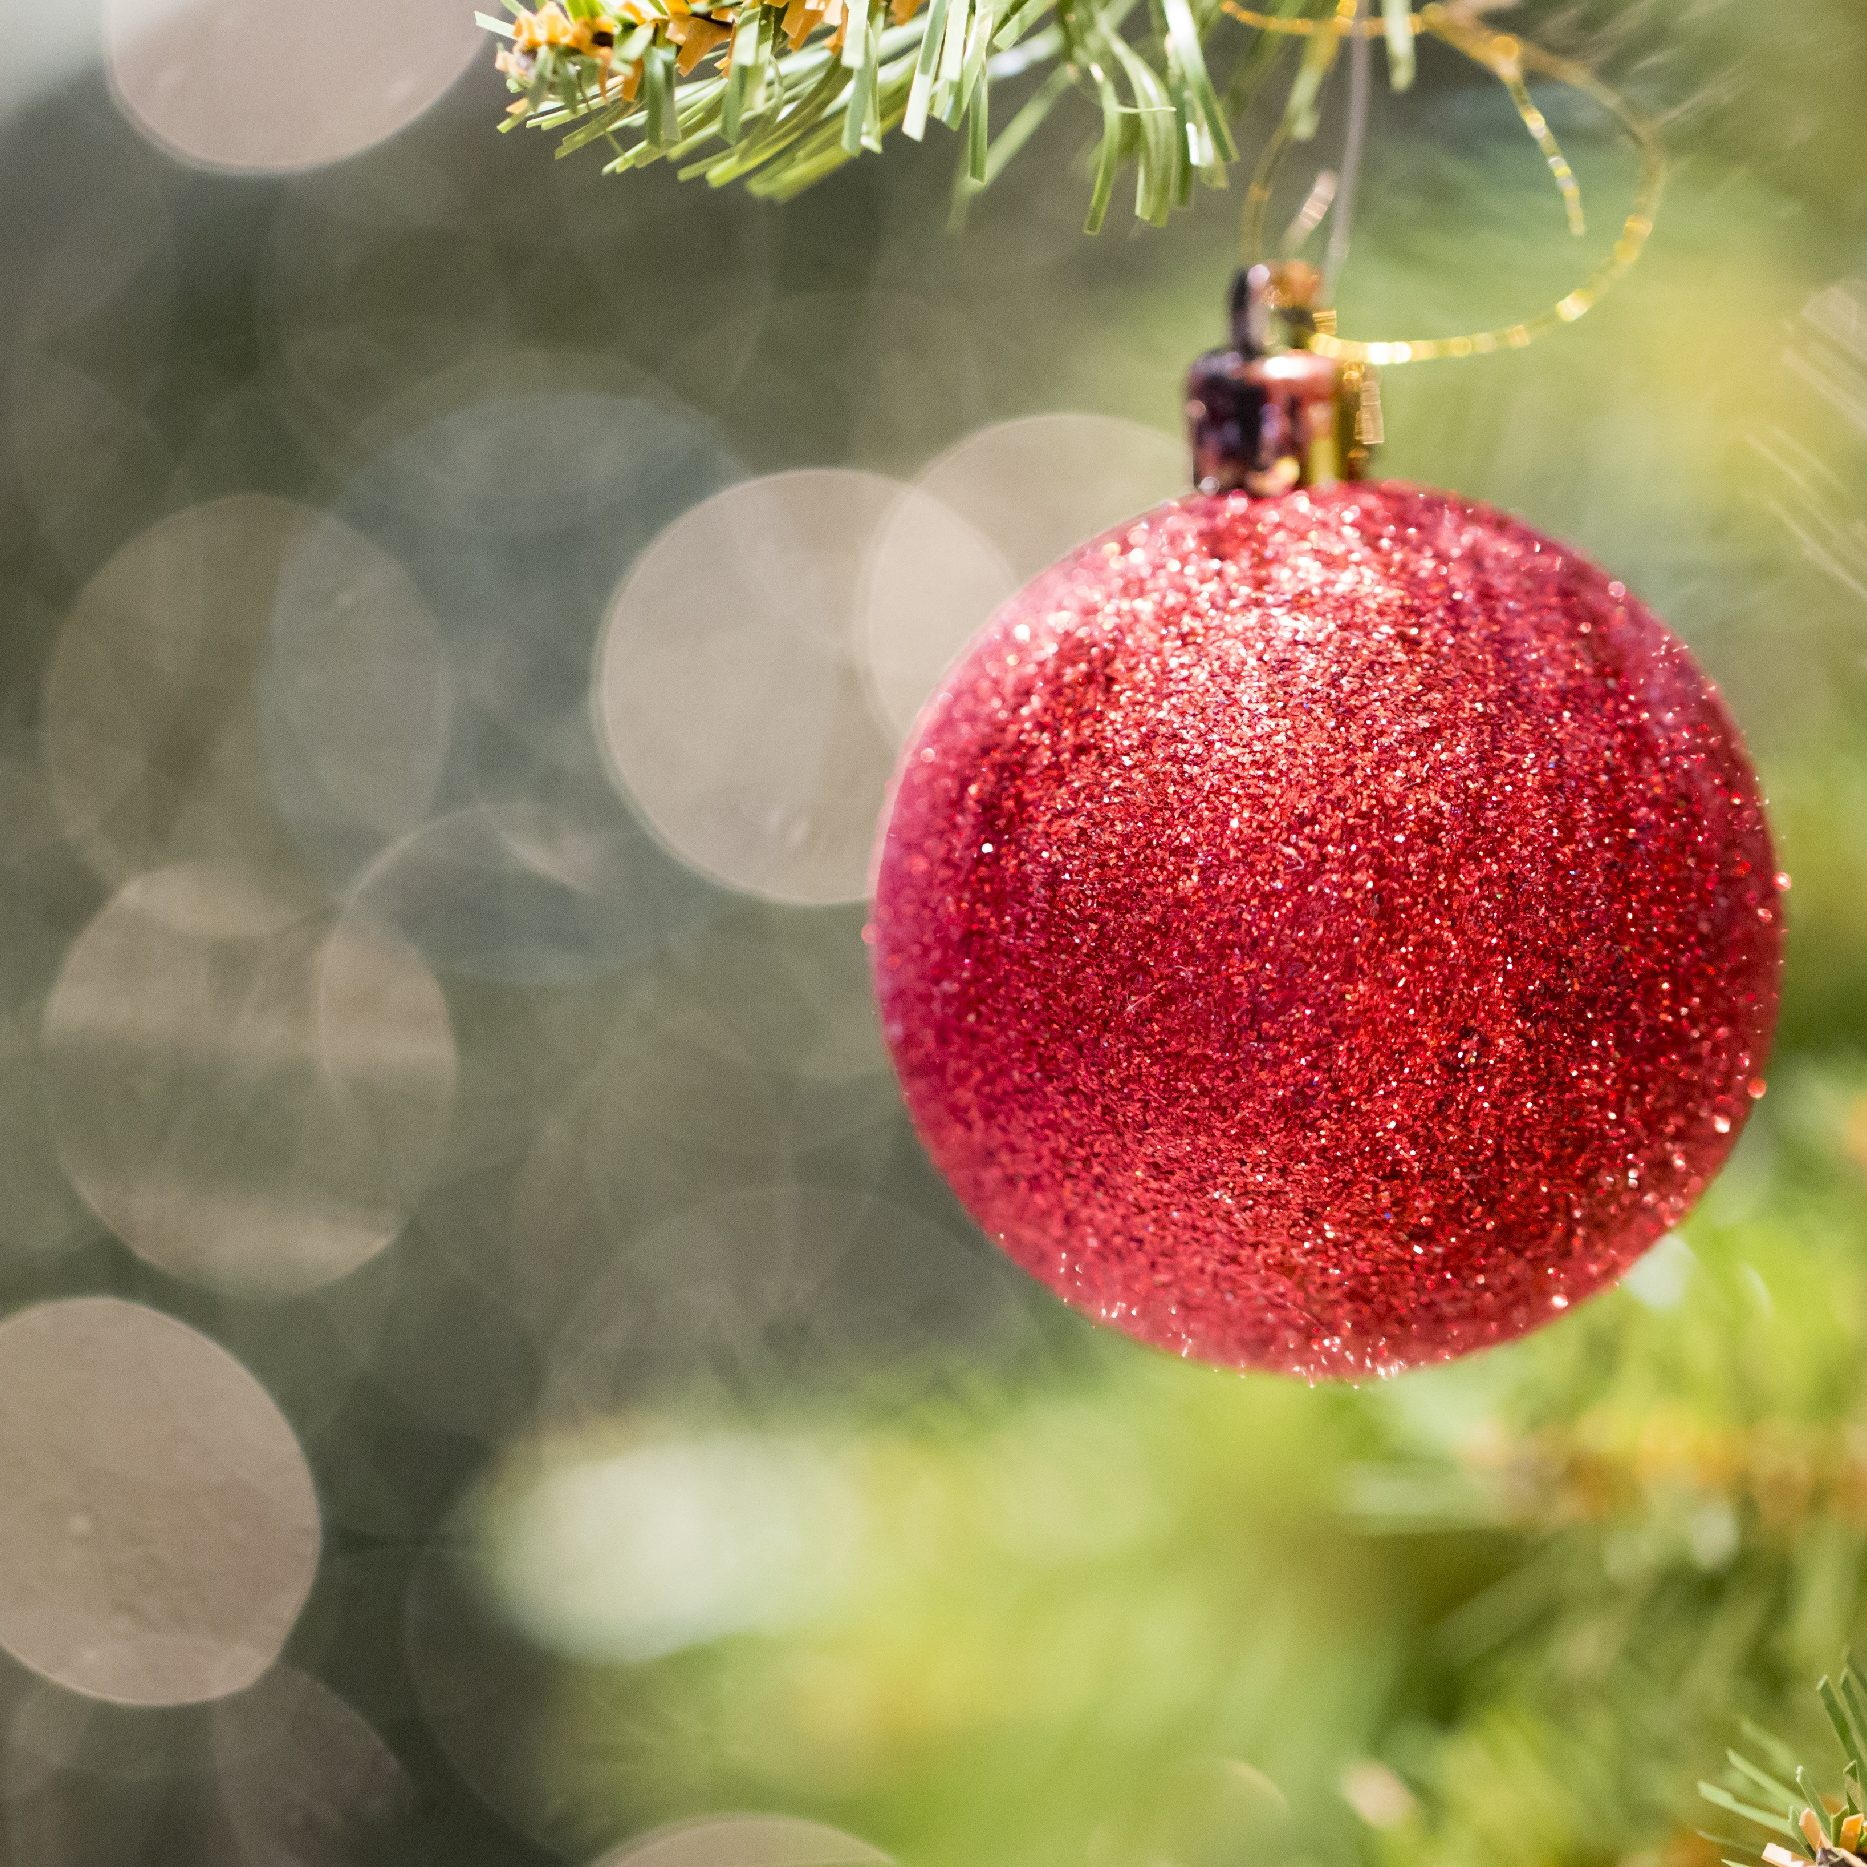 6 Ways to Rejuvenate During the Holidays